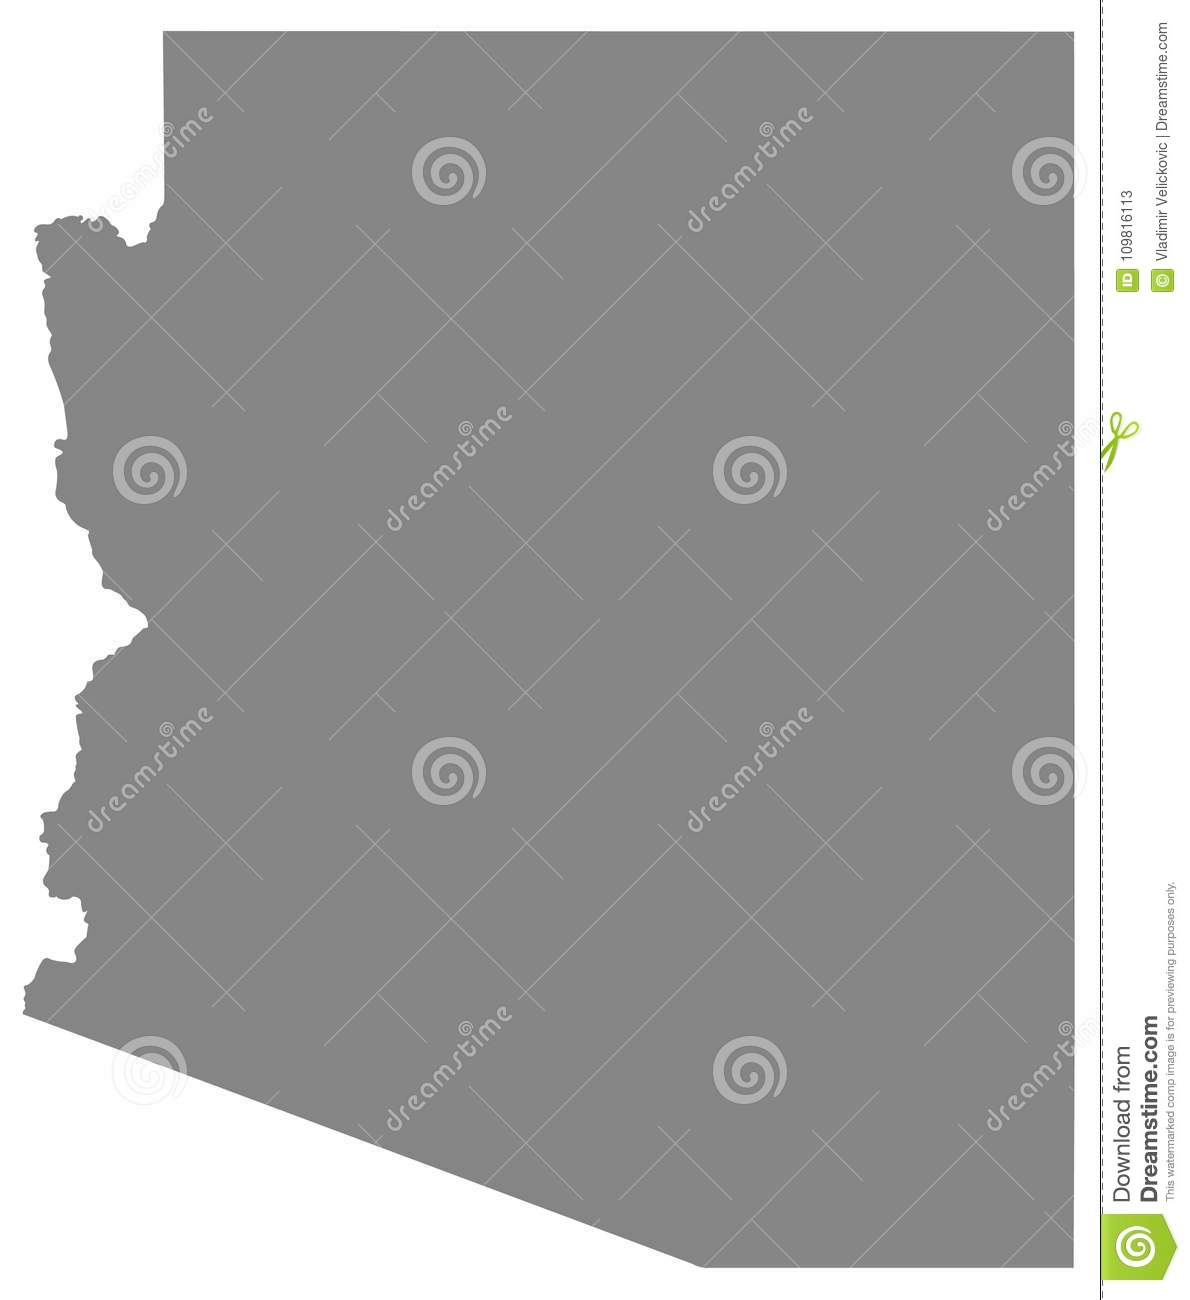 Arizona Map - State In The Southwestern Region Of The United States ...